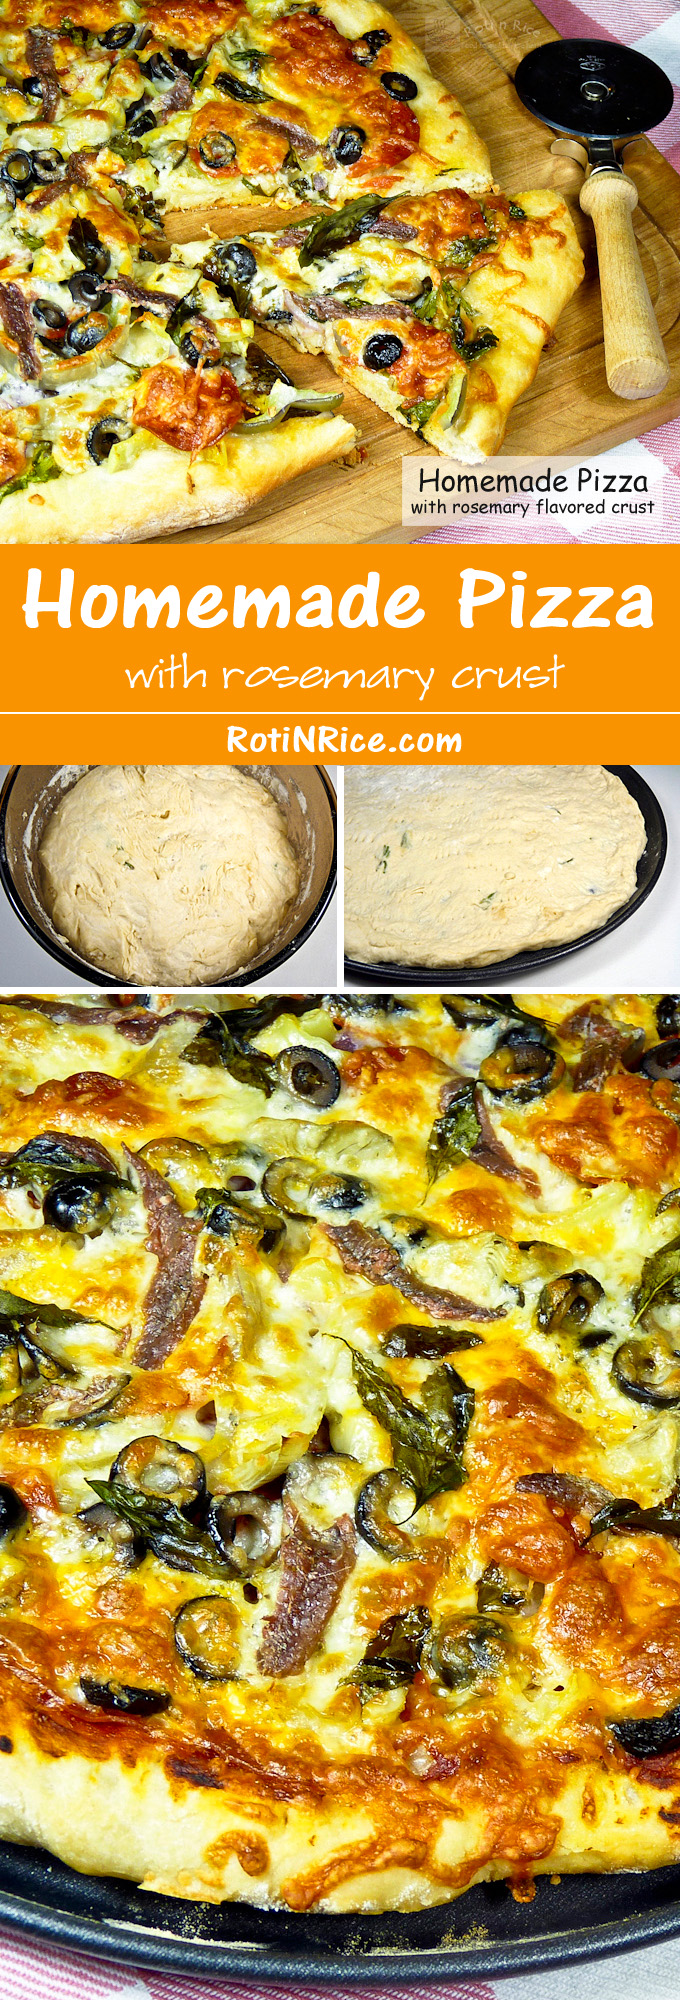 Homemade Pizza with a superb rosemary flavored crispy chewy crust. Resting the dough in the refrigerator allows for its flavor to fully develop. | RotiNRice.com